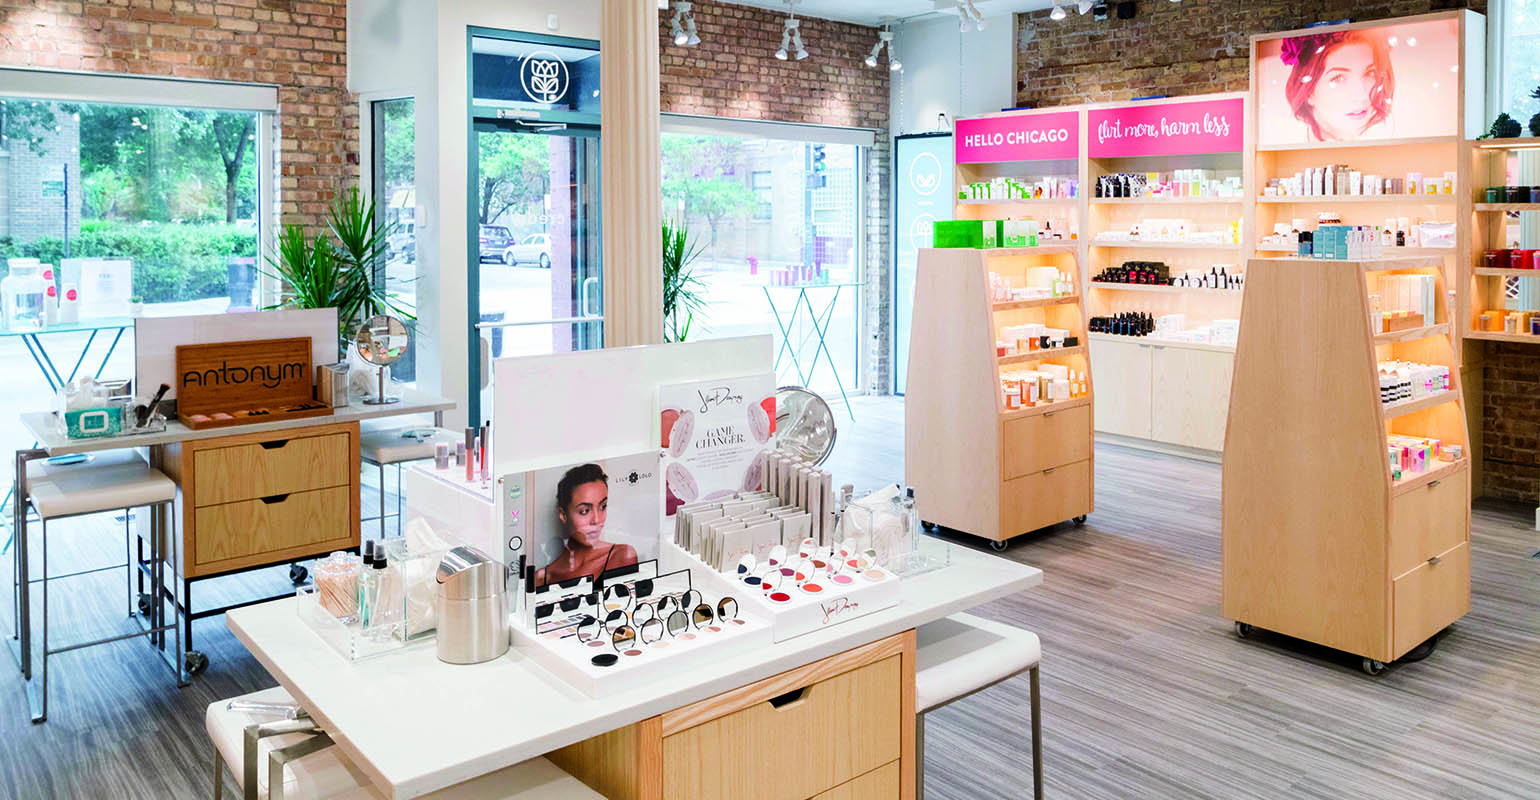 Specialty retailer Credo creates inviting spaces to welcome clean skin care customers of all ages